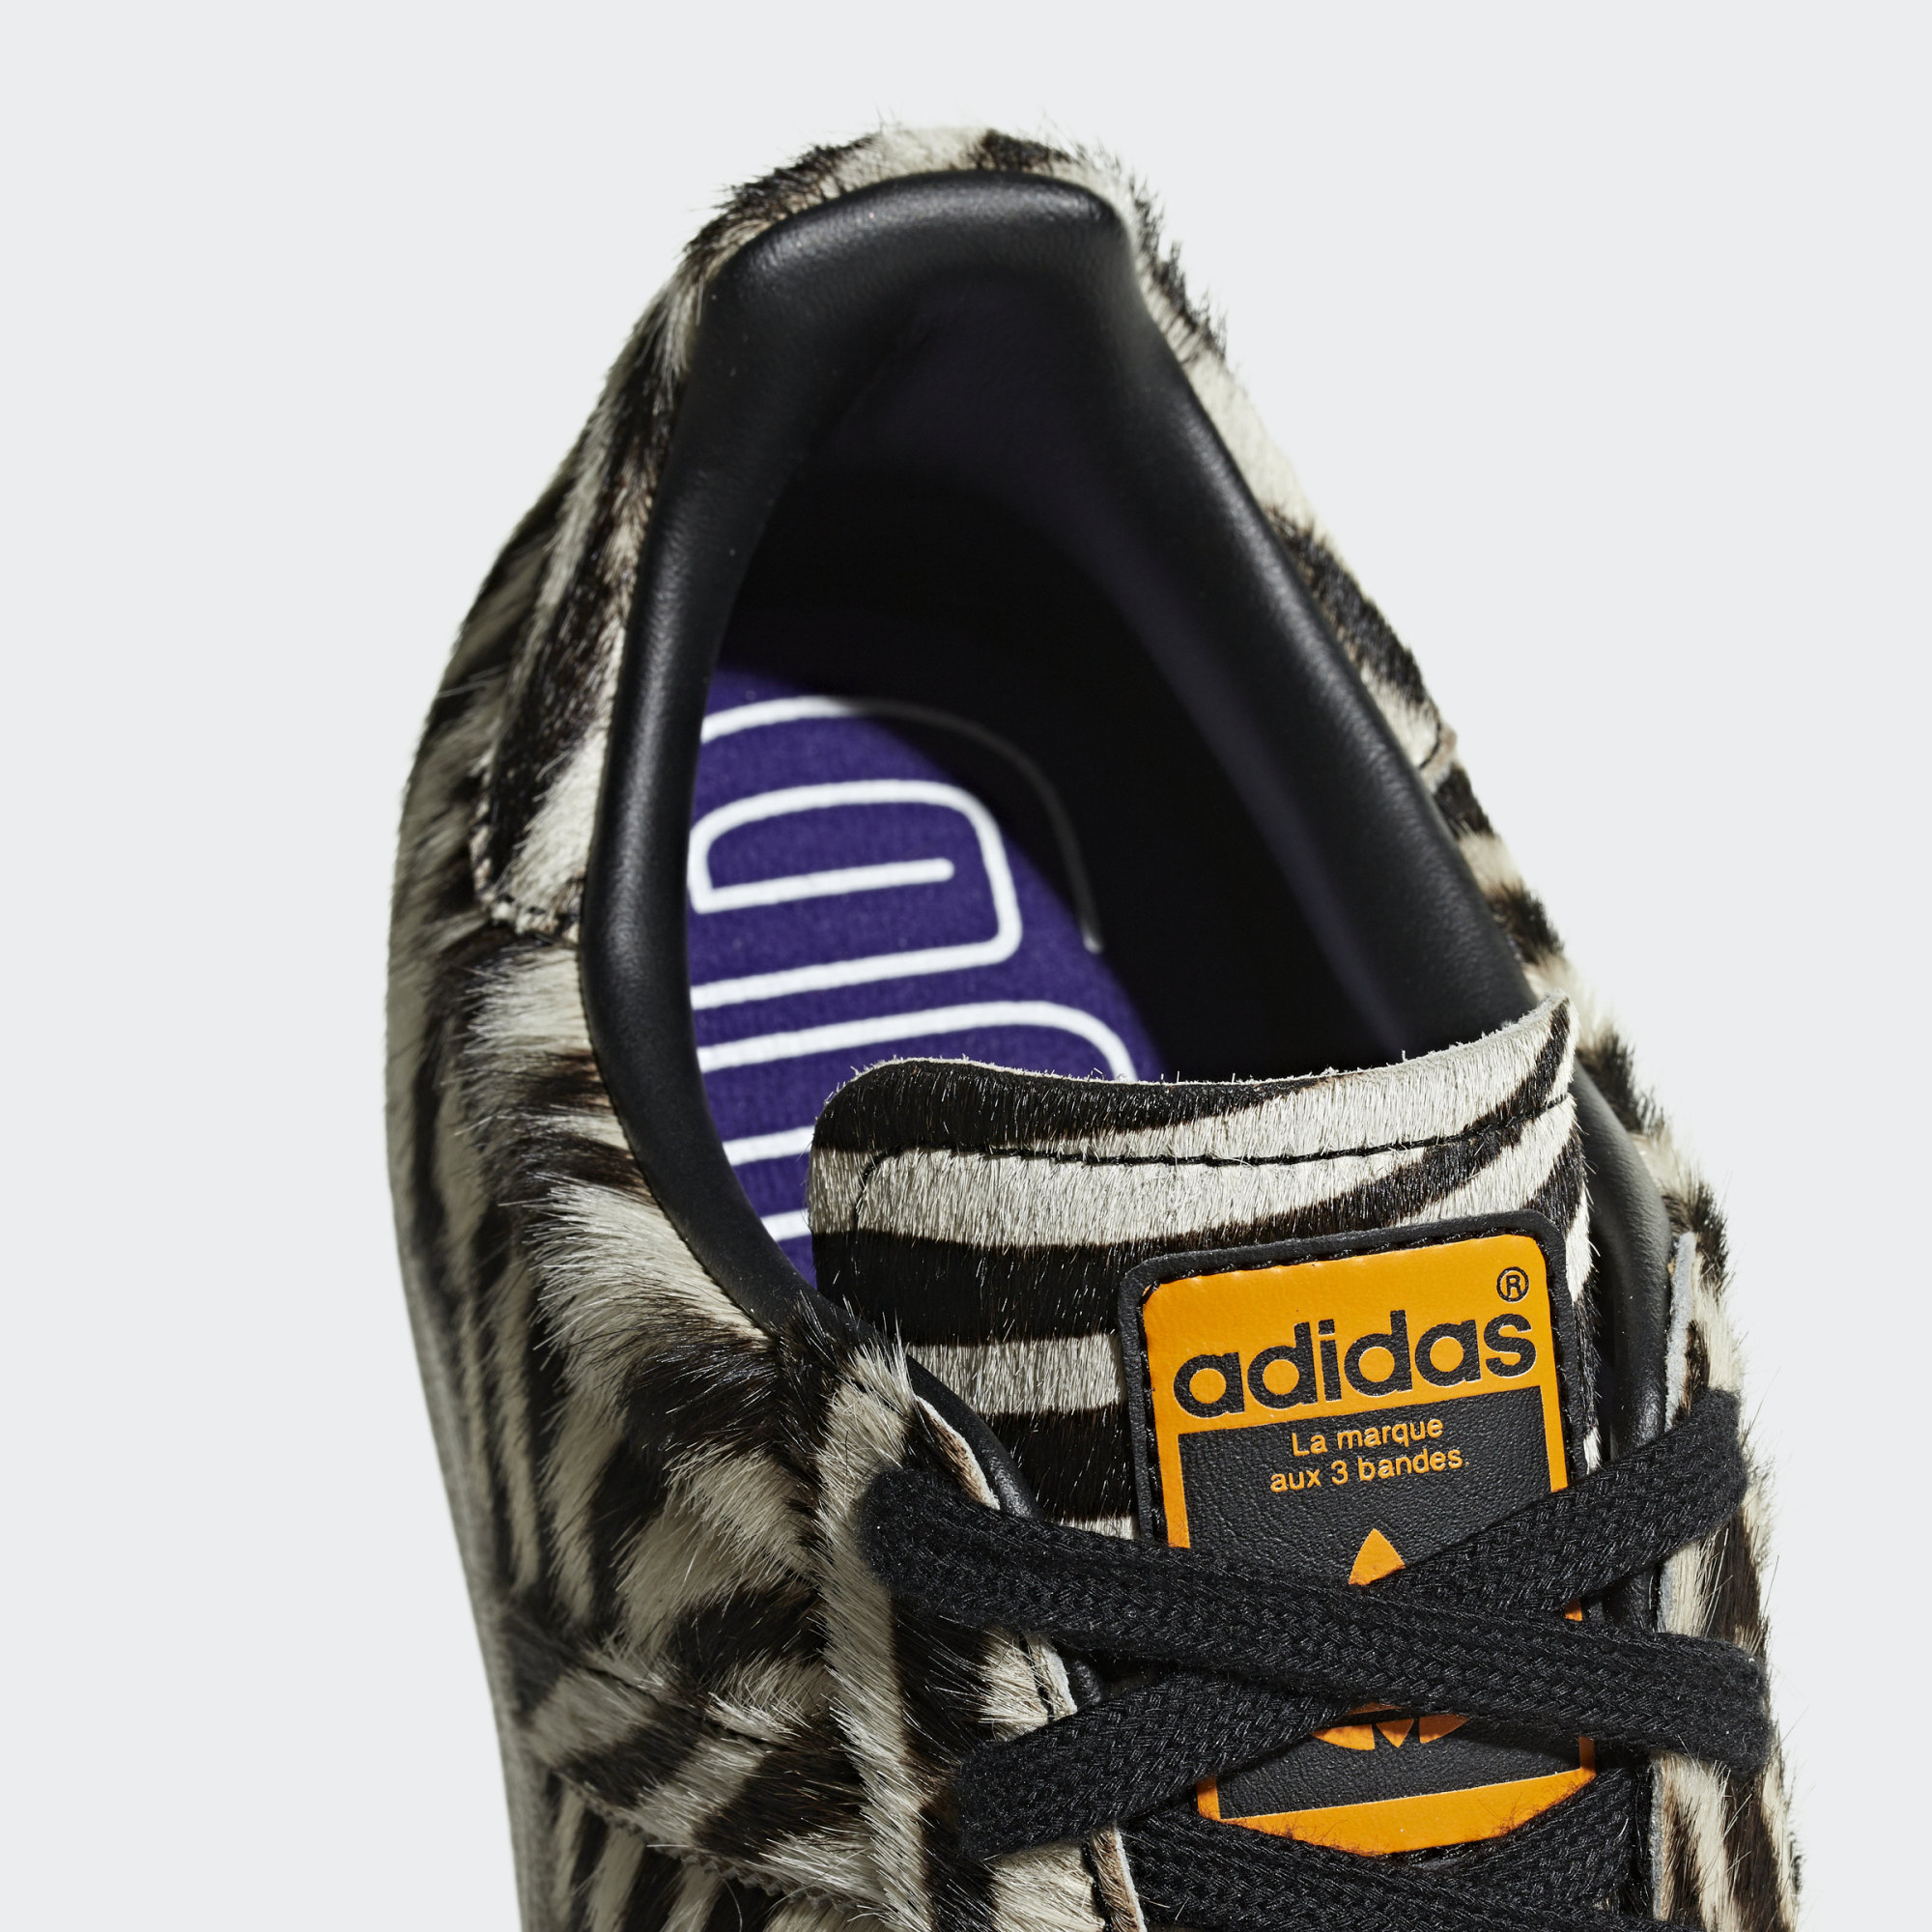 Adidas Superstar Out Loud Collection